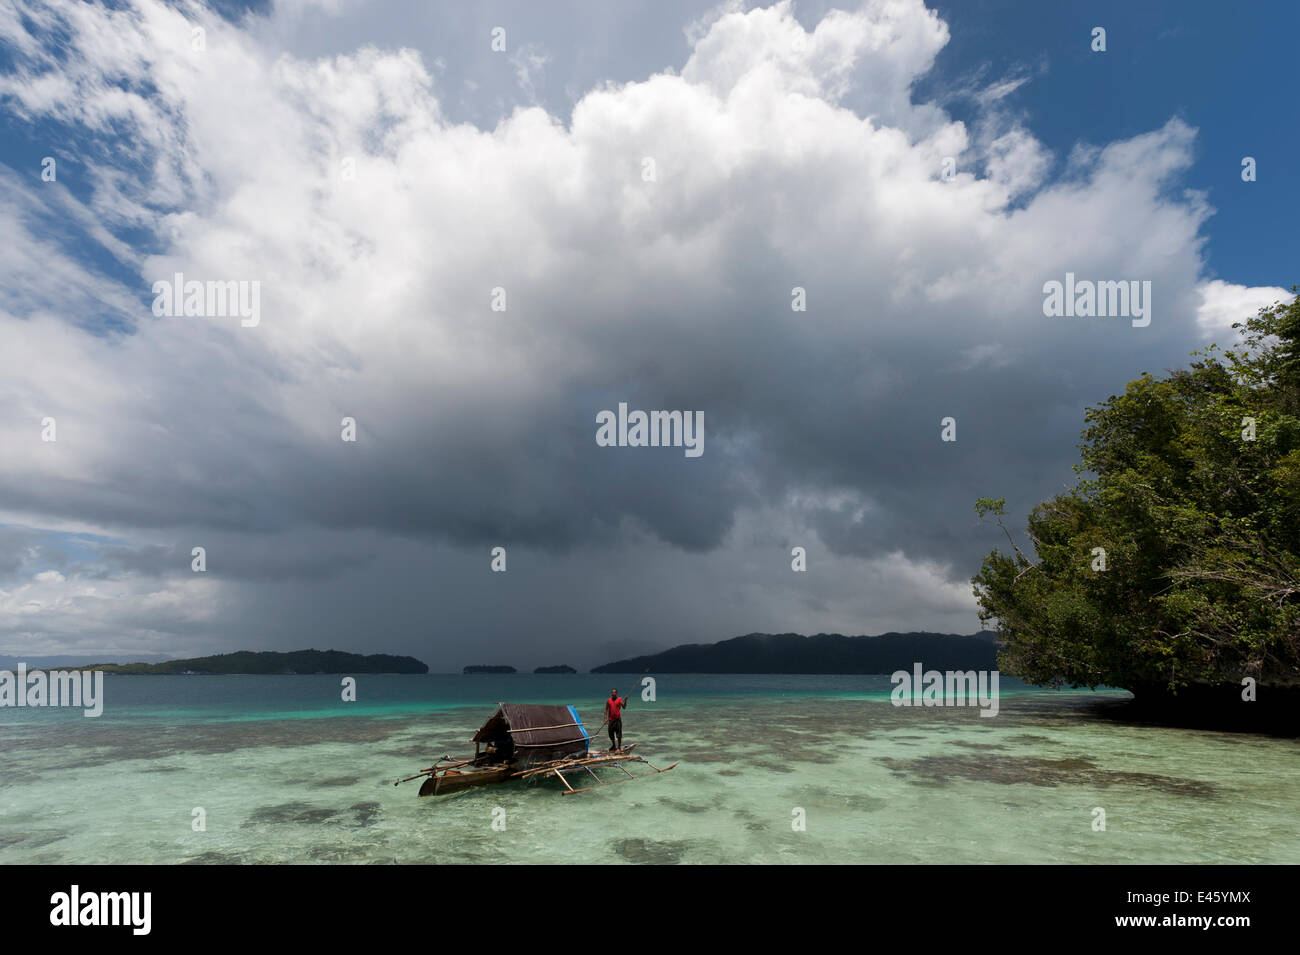 West Papuan fisherman in his outrigger house boat in the shallows over the reef. Raja Ampat, West Papua, Indonesia, - Stock Image